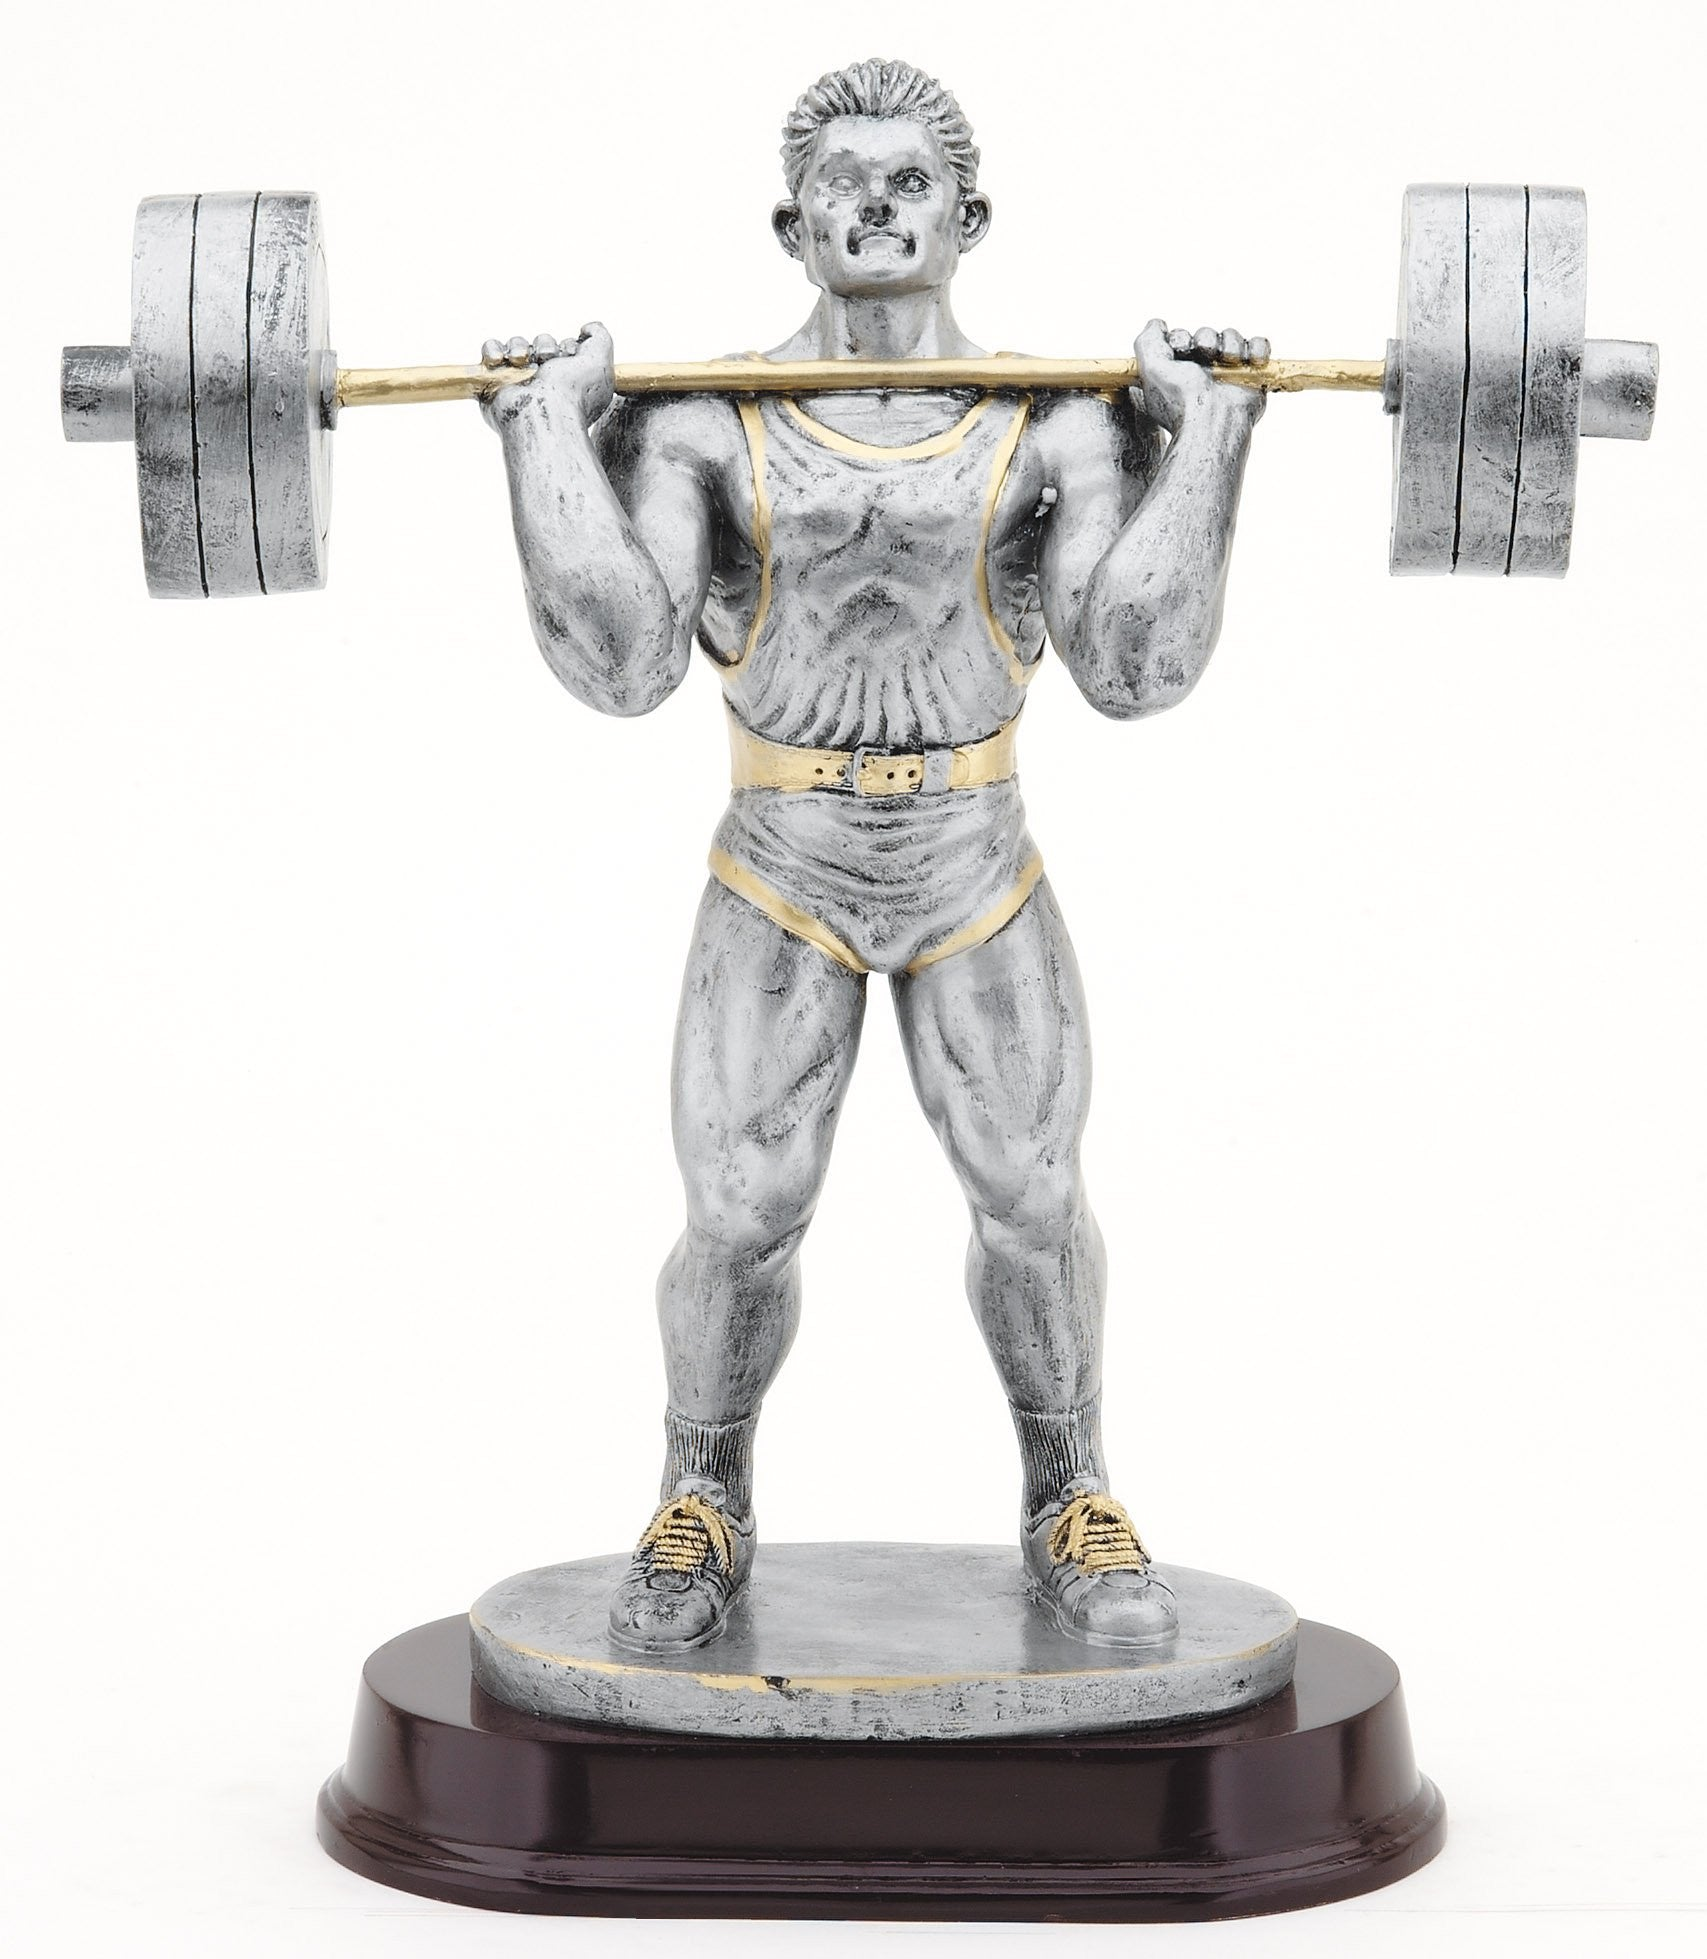 Bar Press Weightlifting Award-Trophy-Schoppy's Since 1921